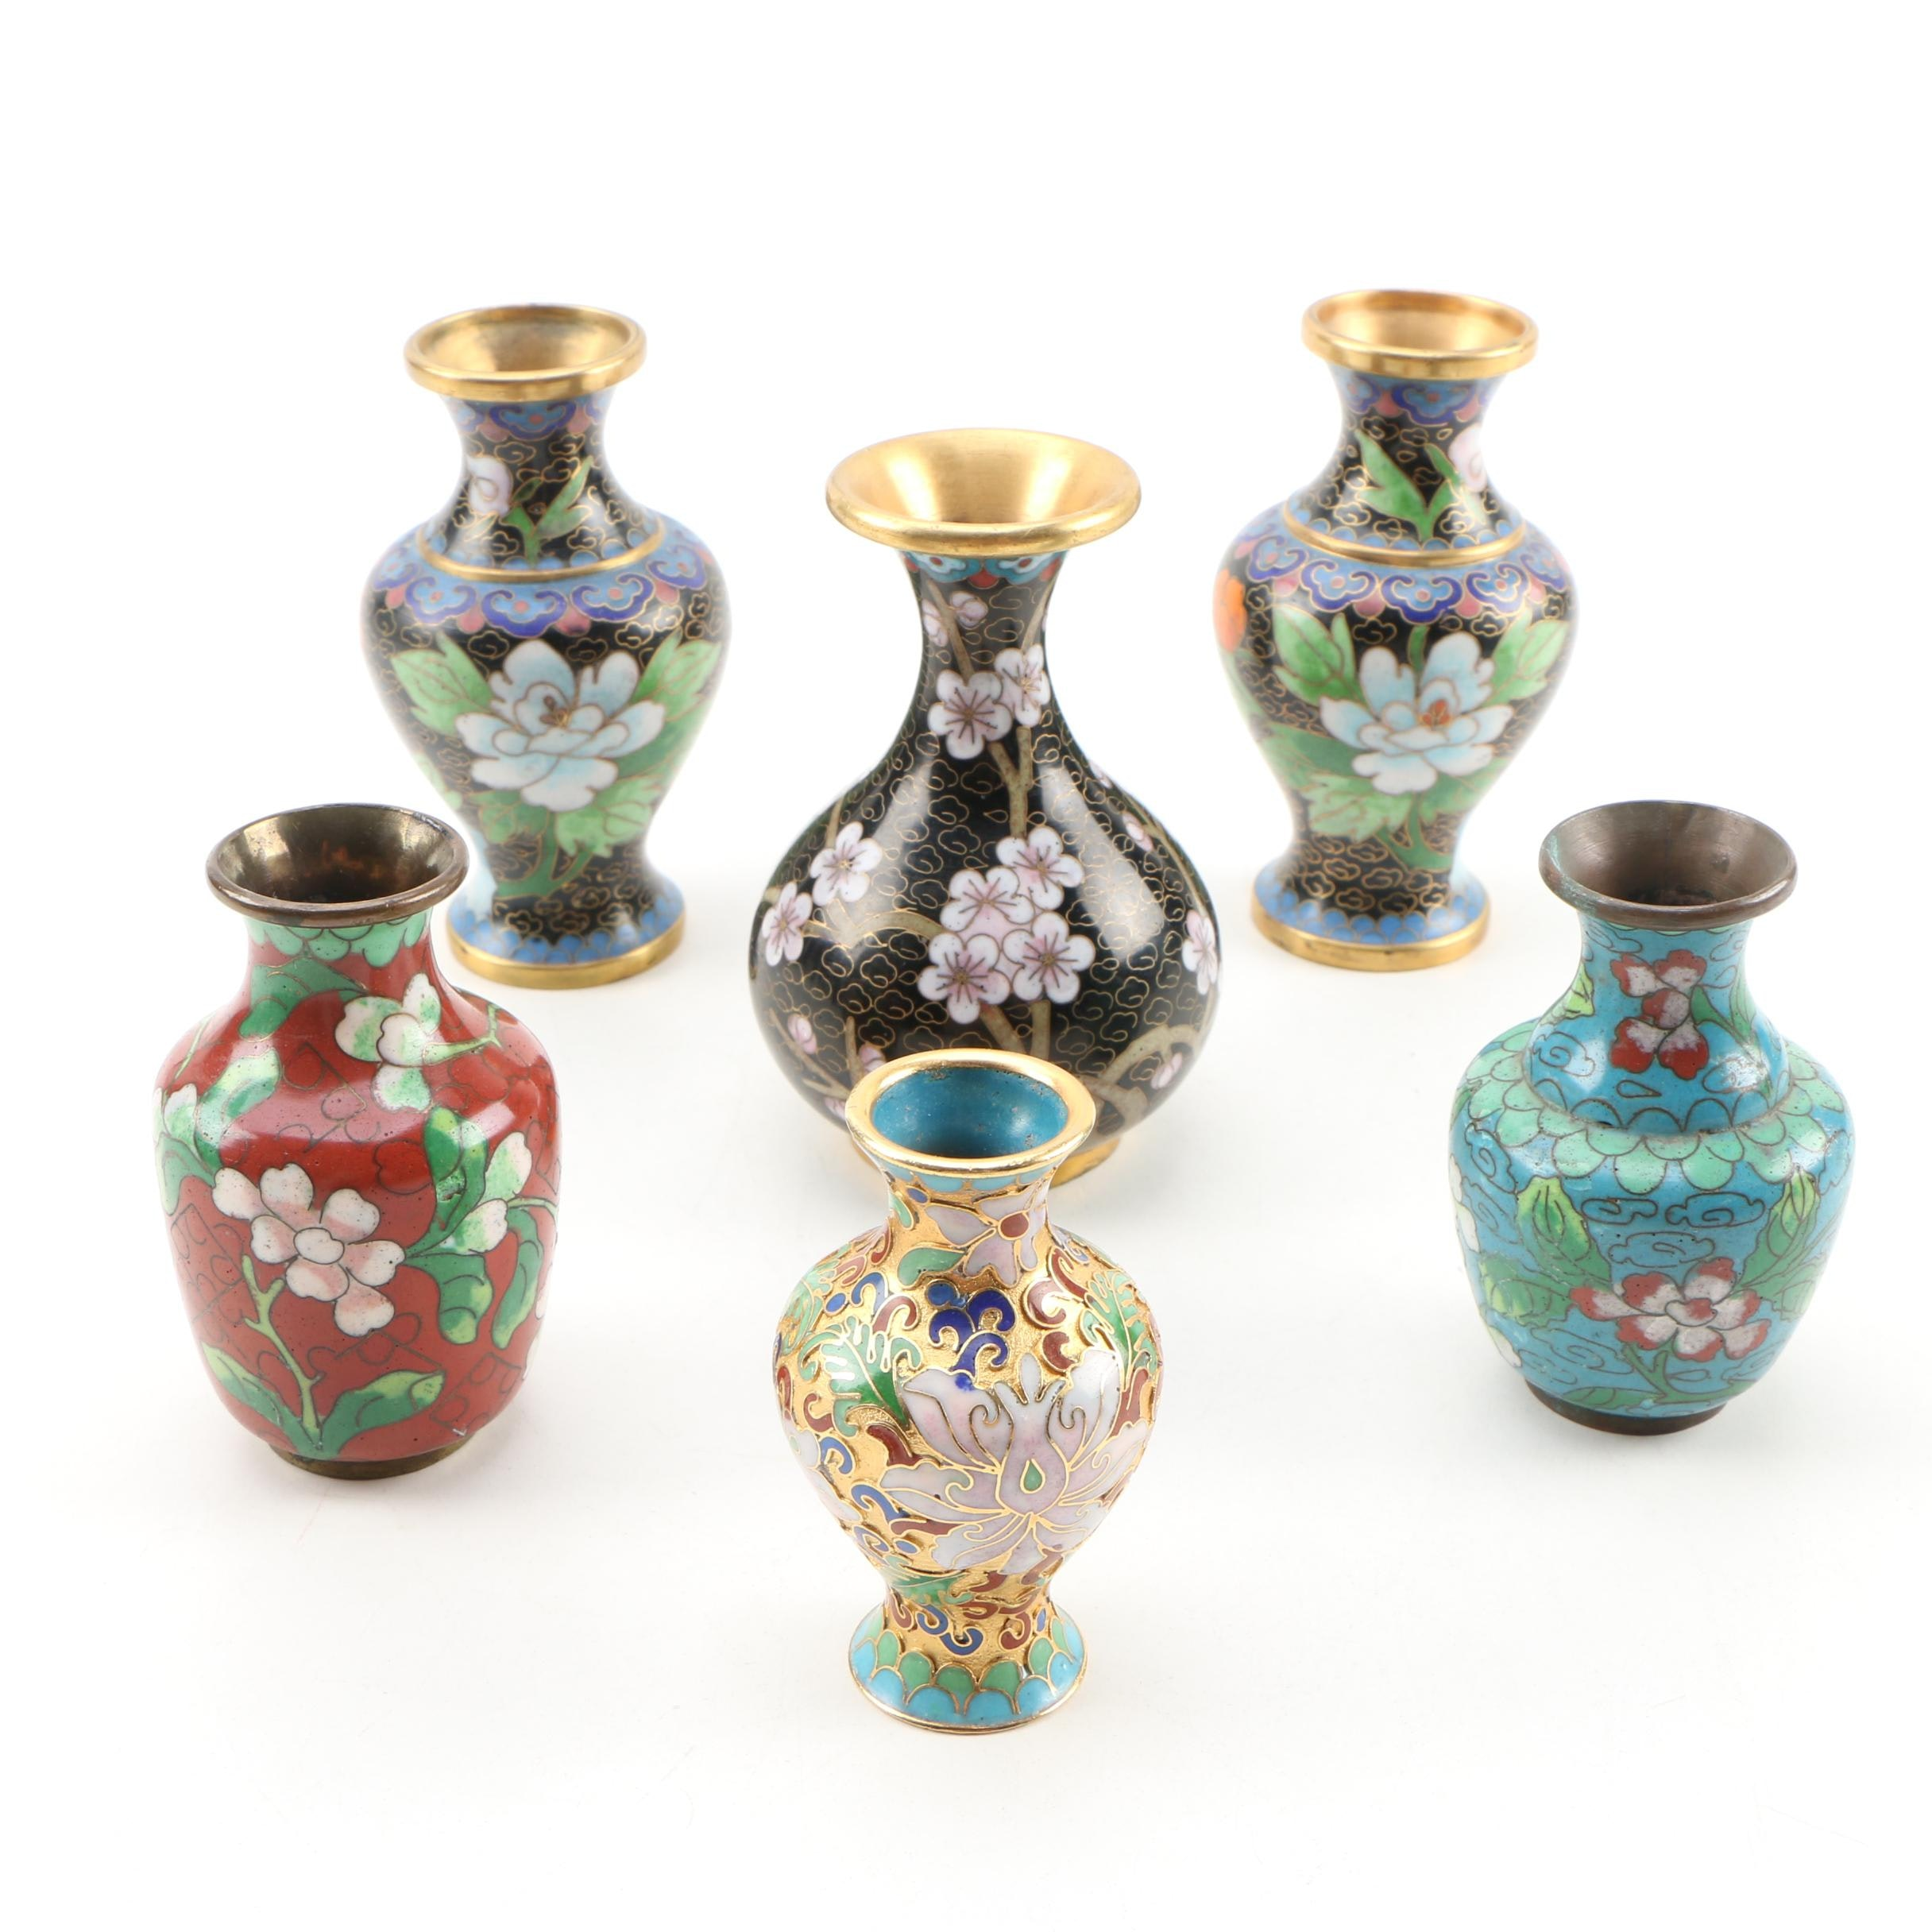 Chinese Cloisonné Miniature and Bud Vases